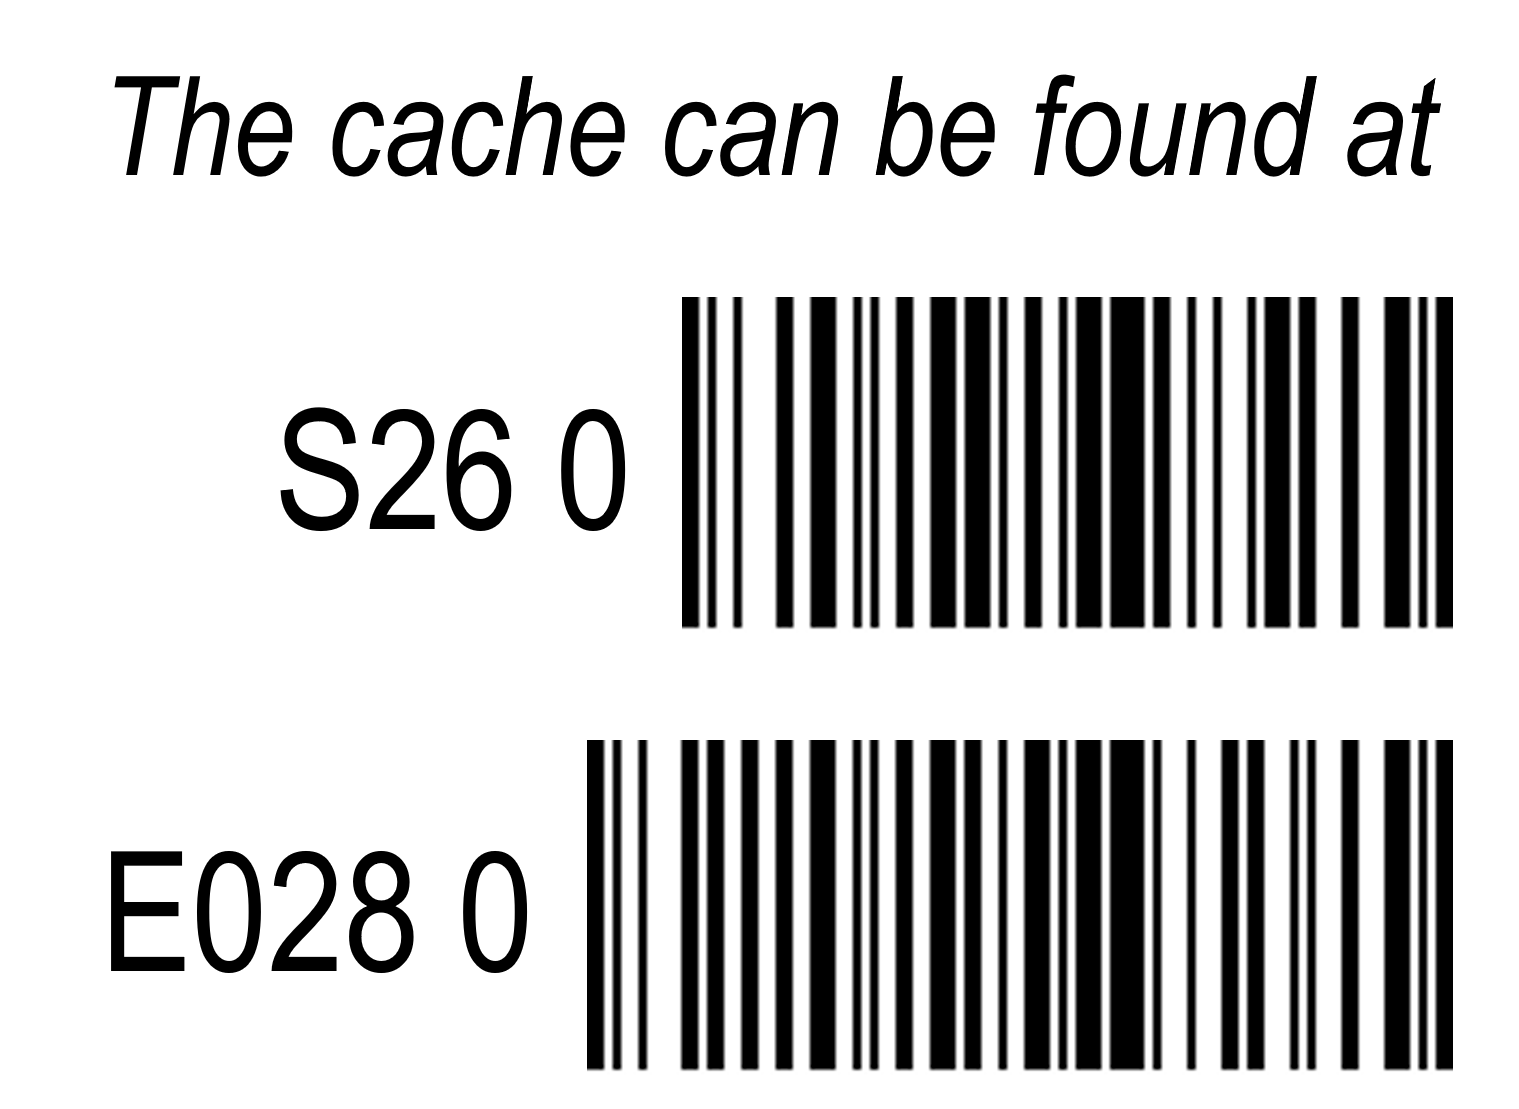 Cd barcode png. Gc w r puzzle